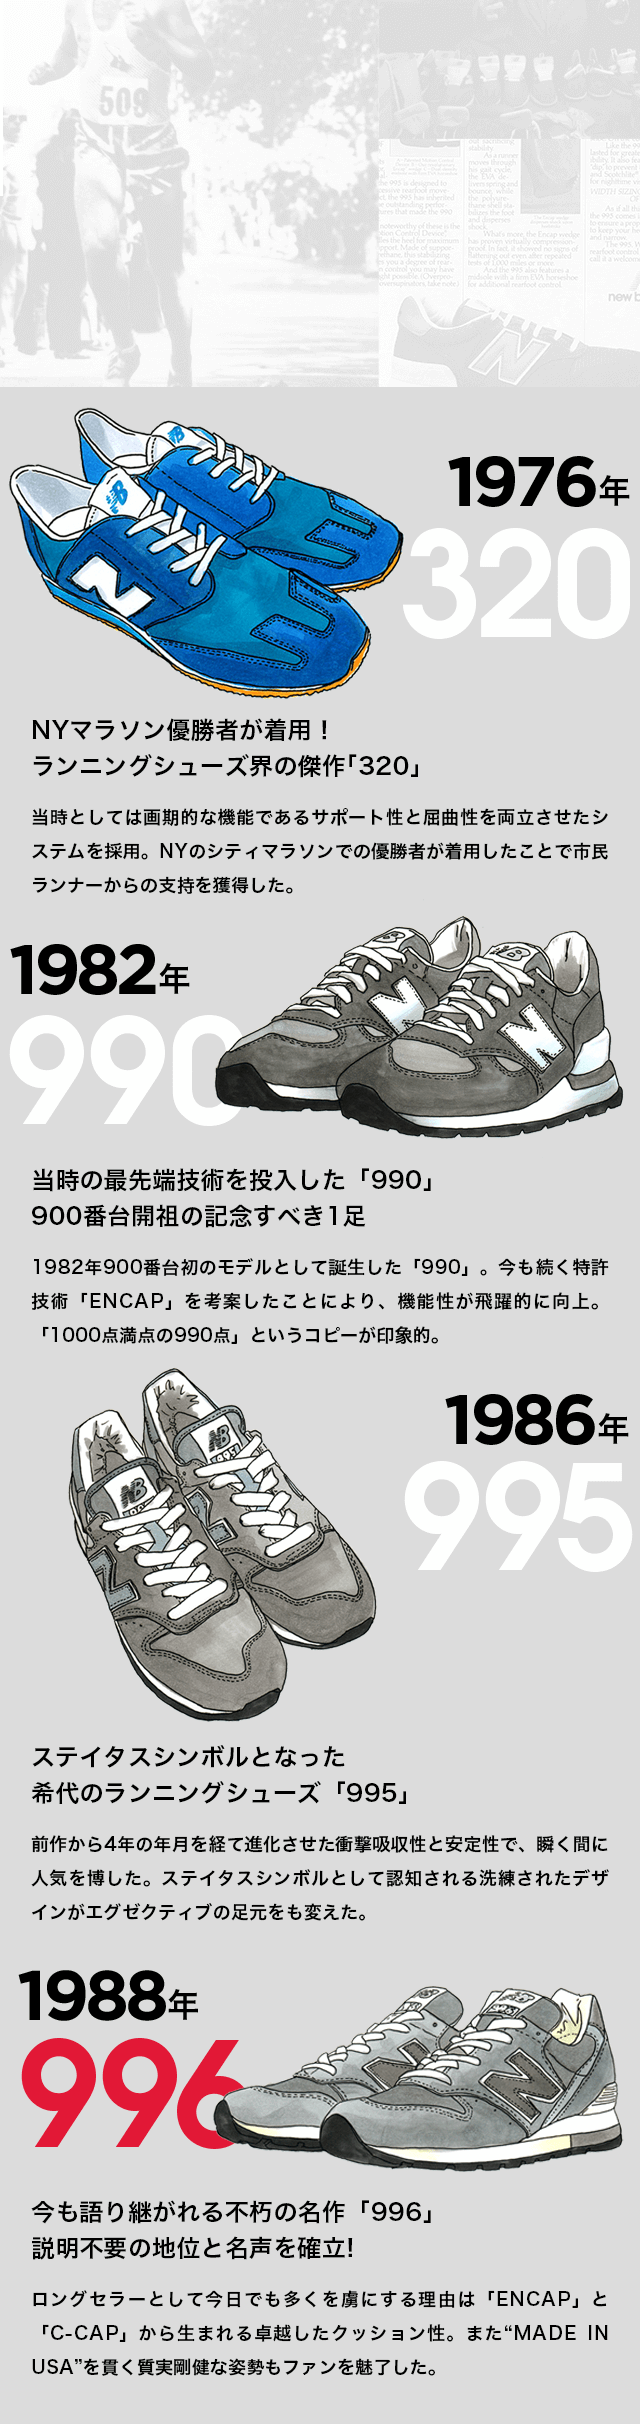 Nb公式 Made In Usa 996